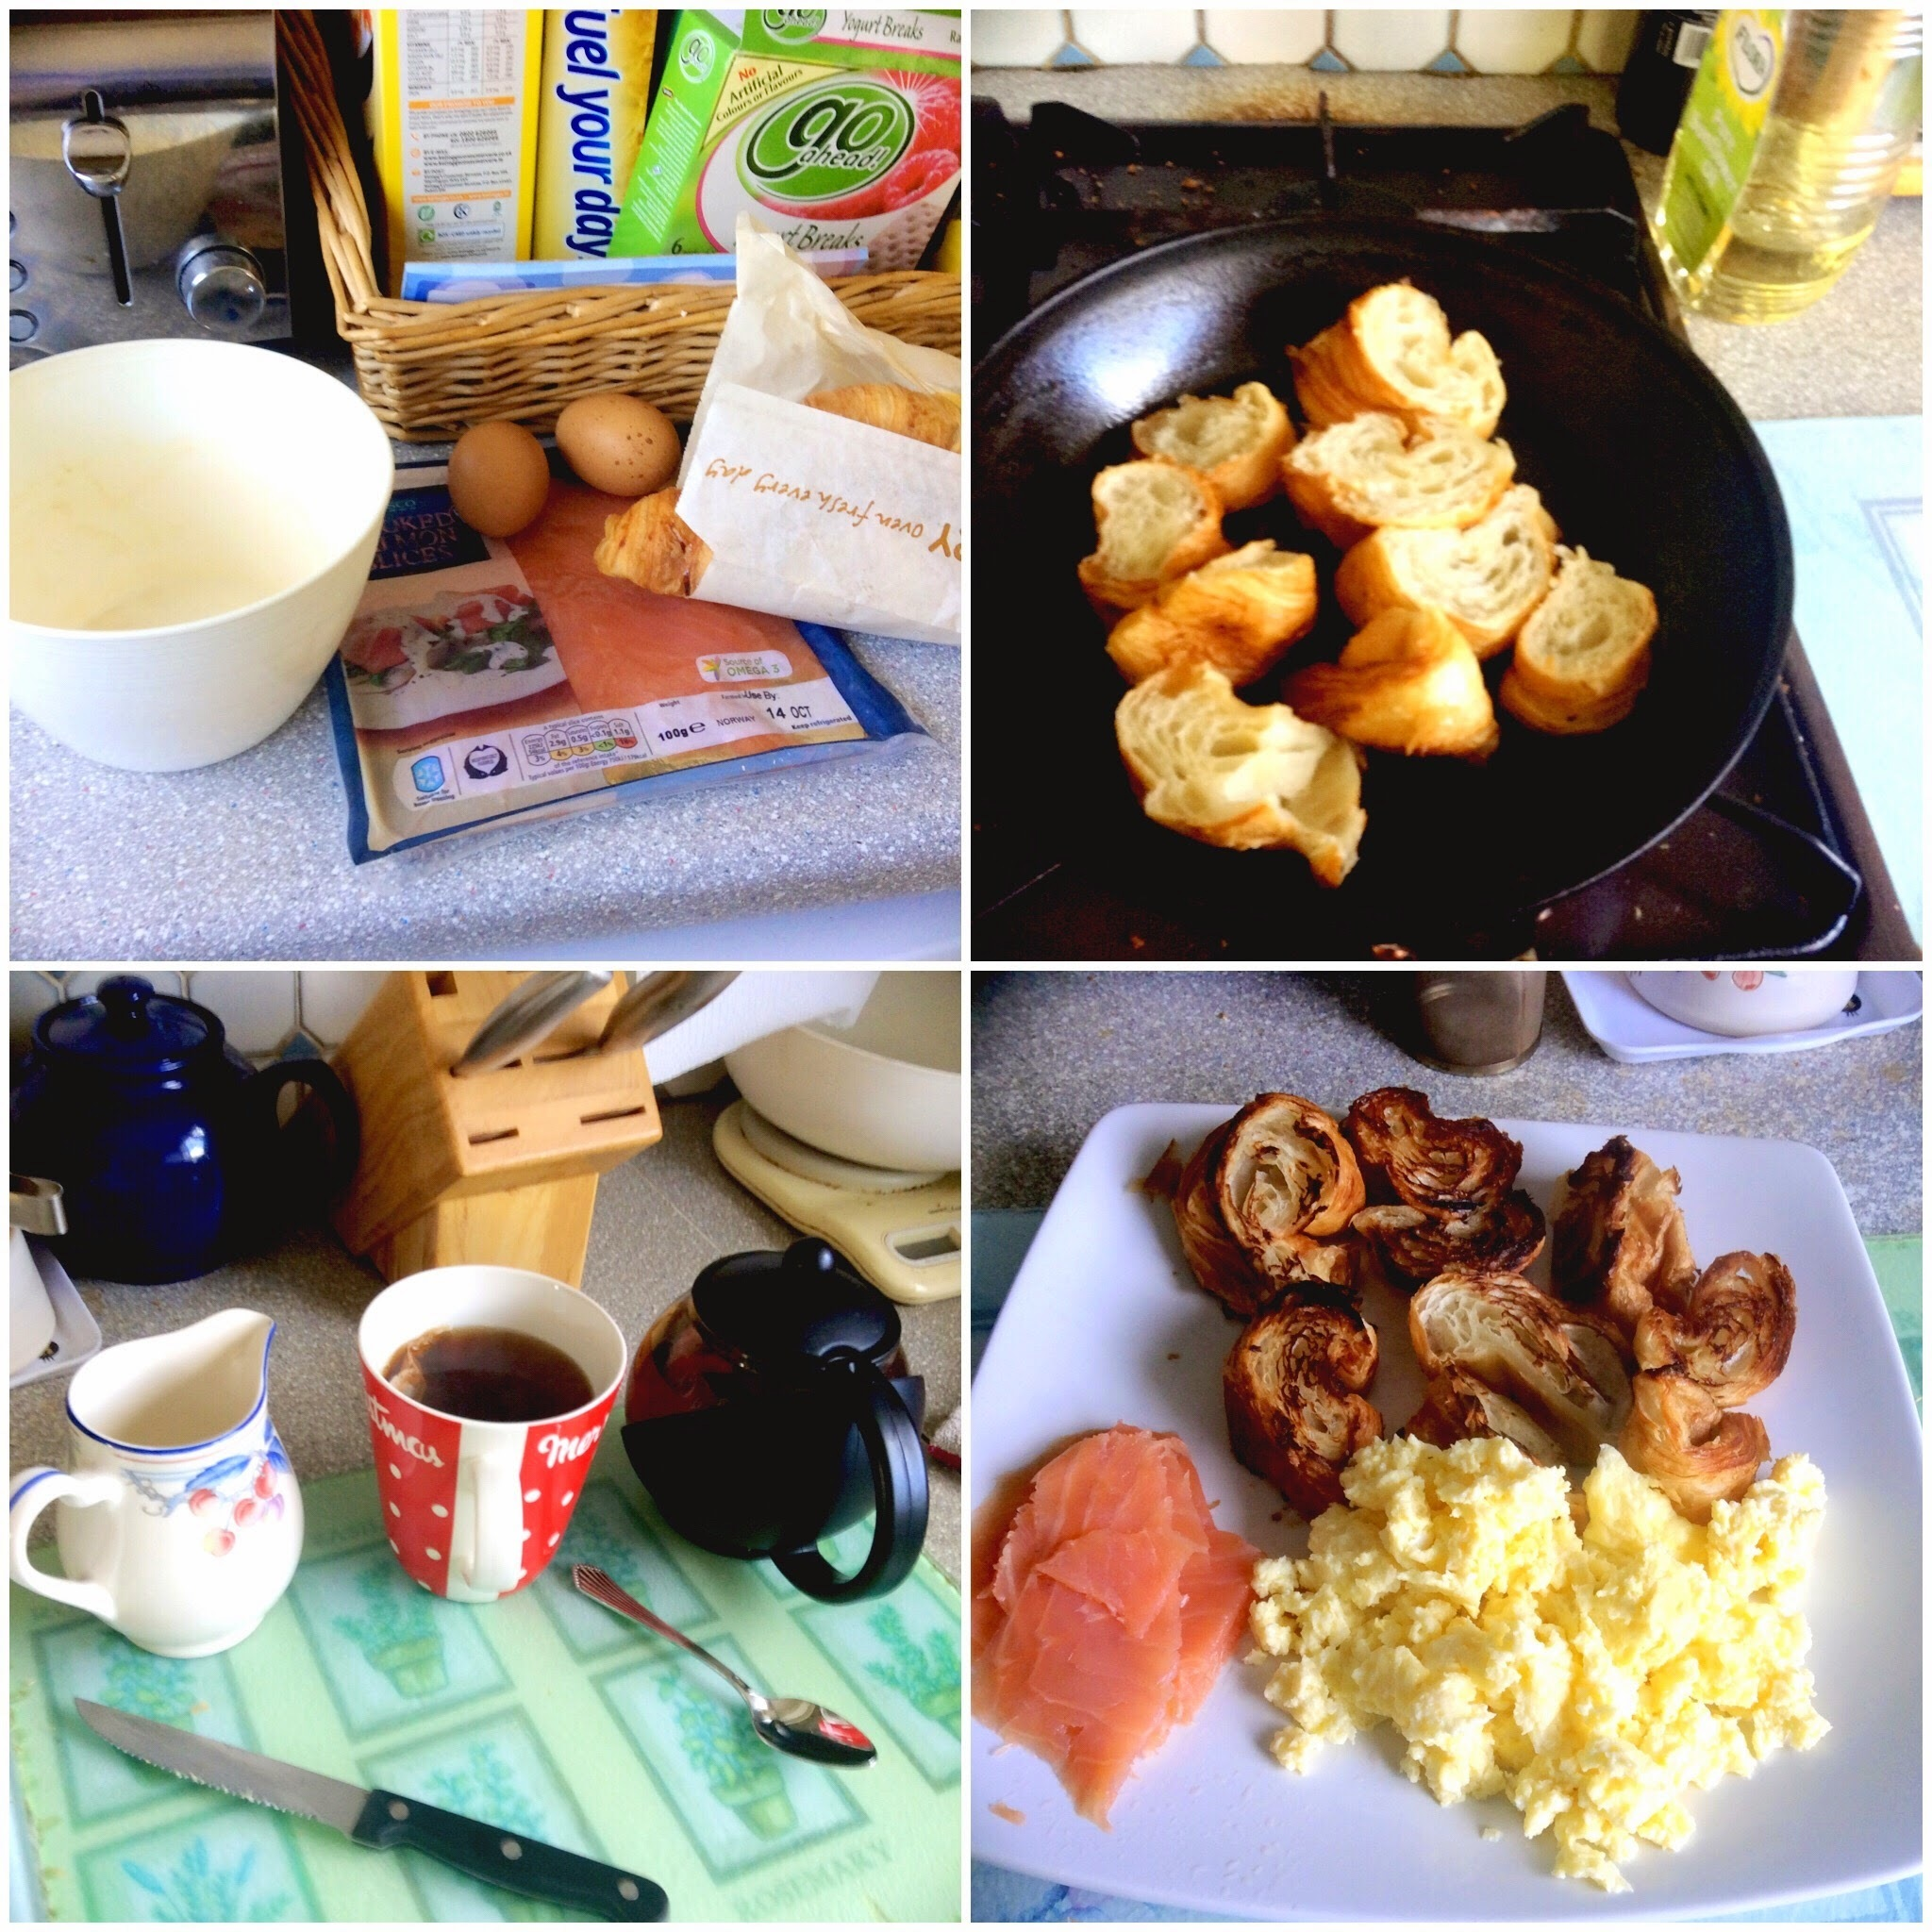 Scrambled Eggs & Smoked Salmon Croissants